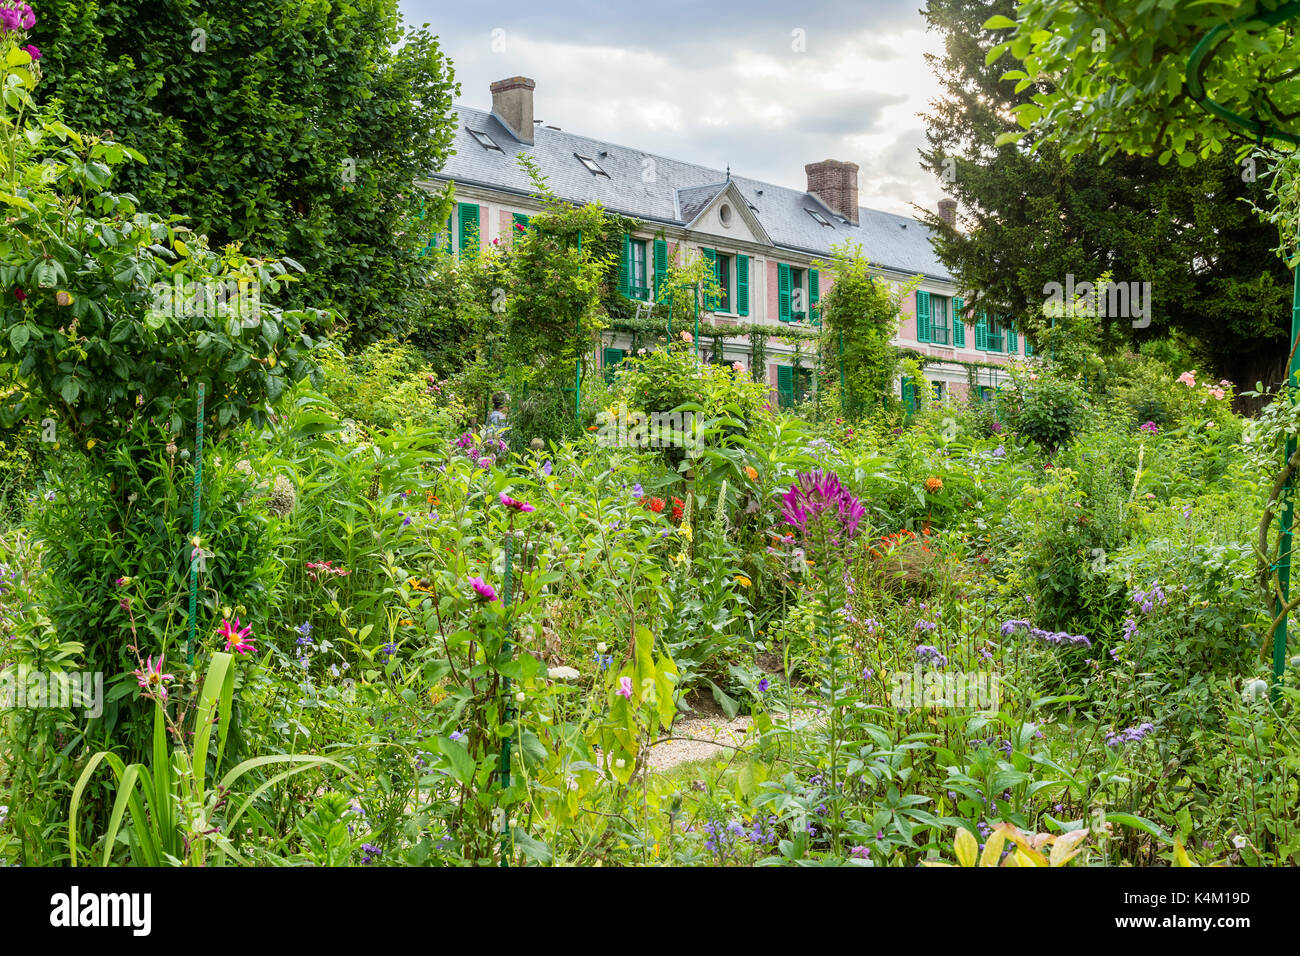 Monet garden giverny stock photos monet garden giverny for Jardin france